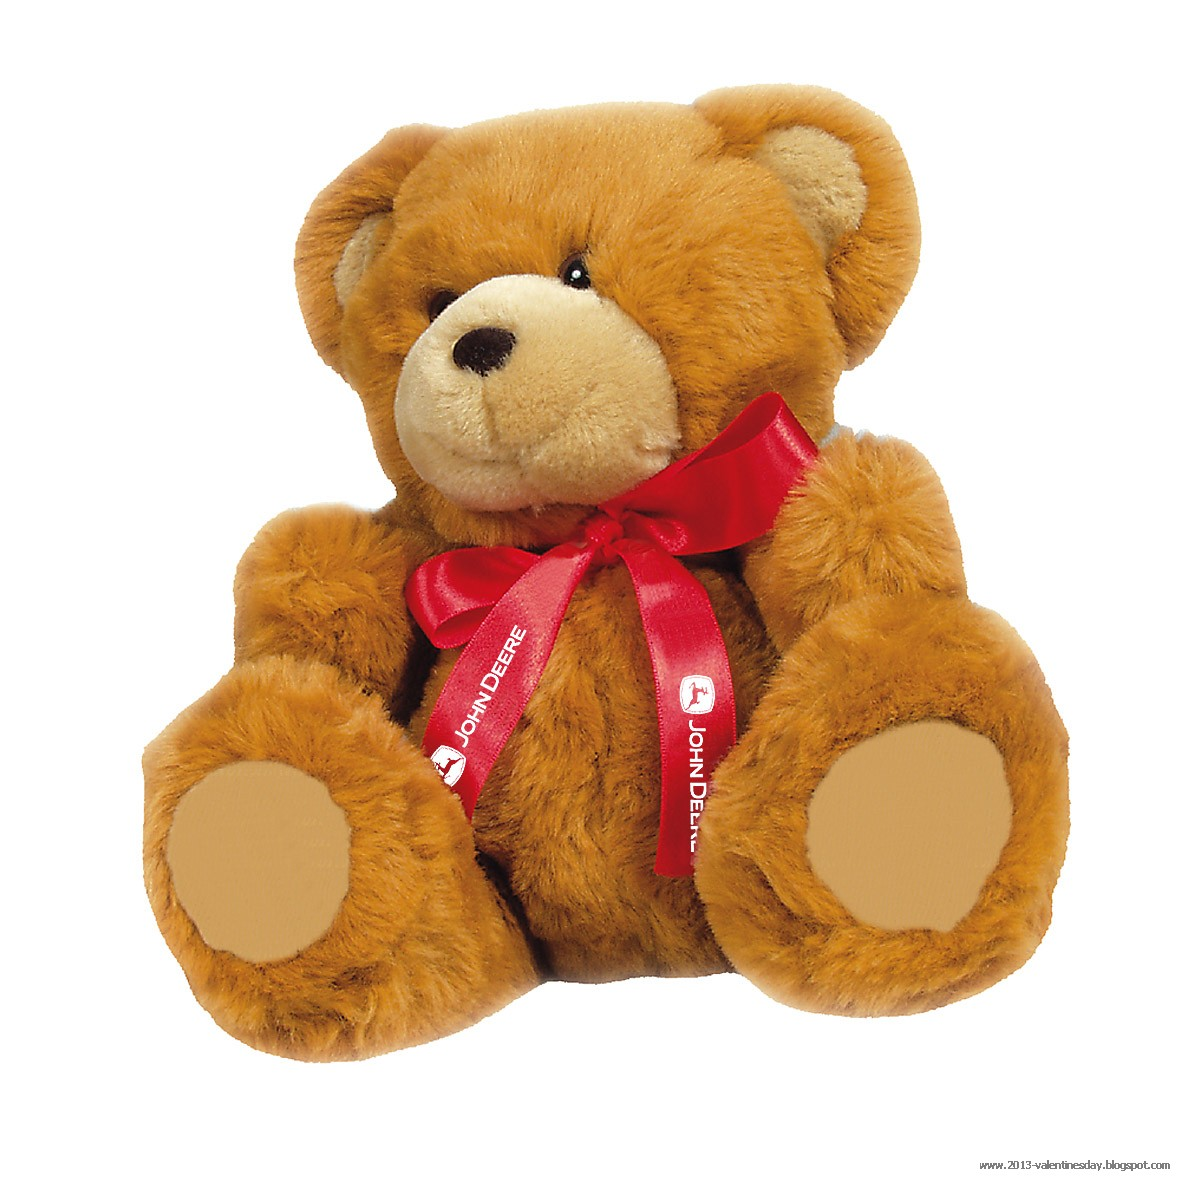 Valentines day Teddy bear gift ideas n HD wallpapers Valentines Day 1181x1181